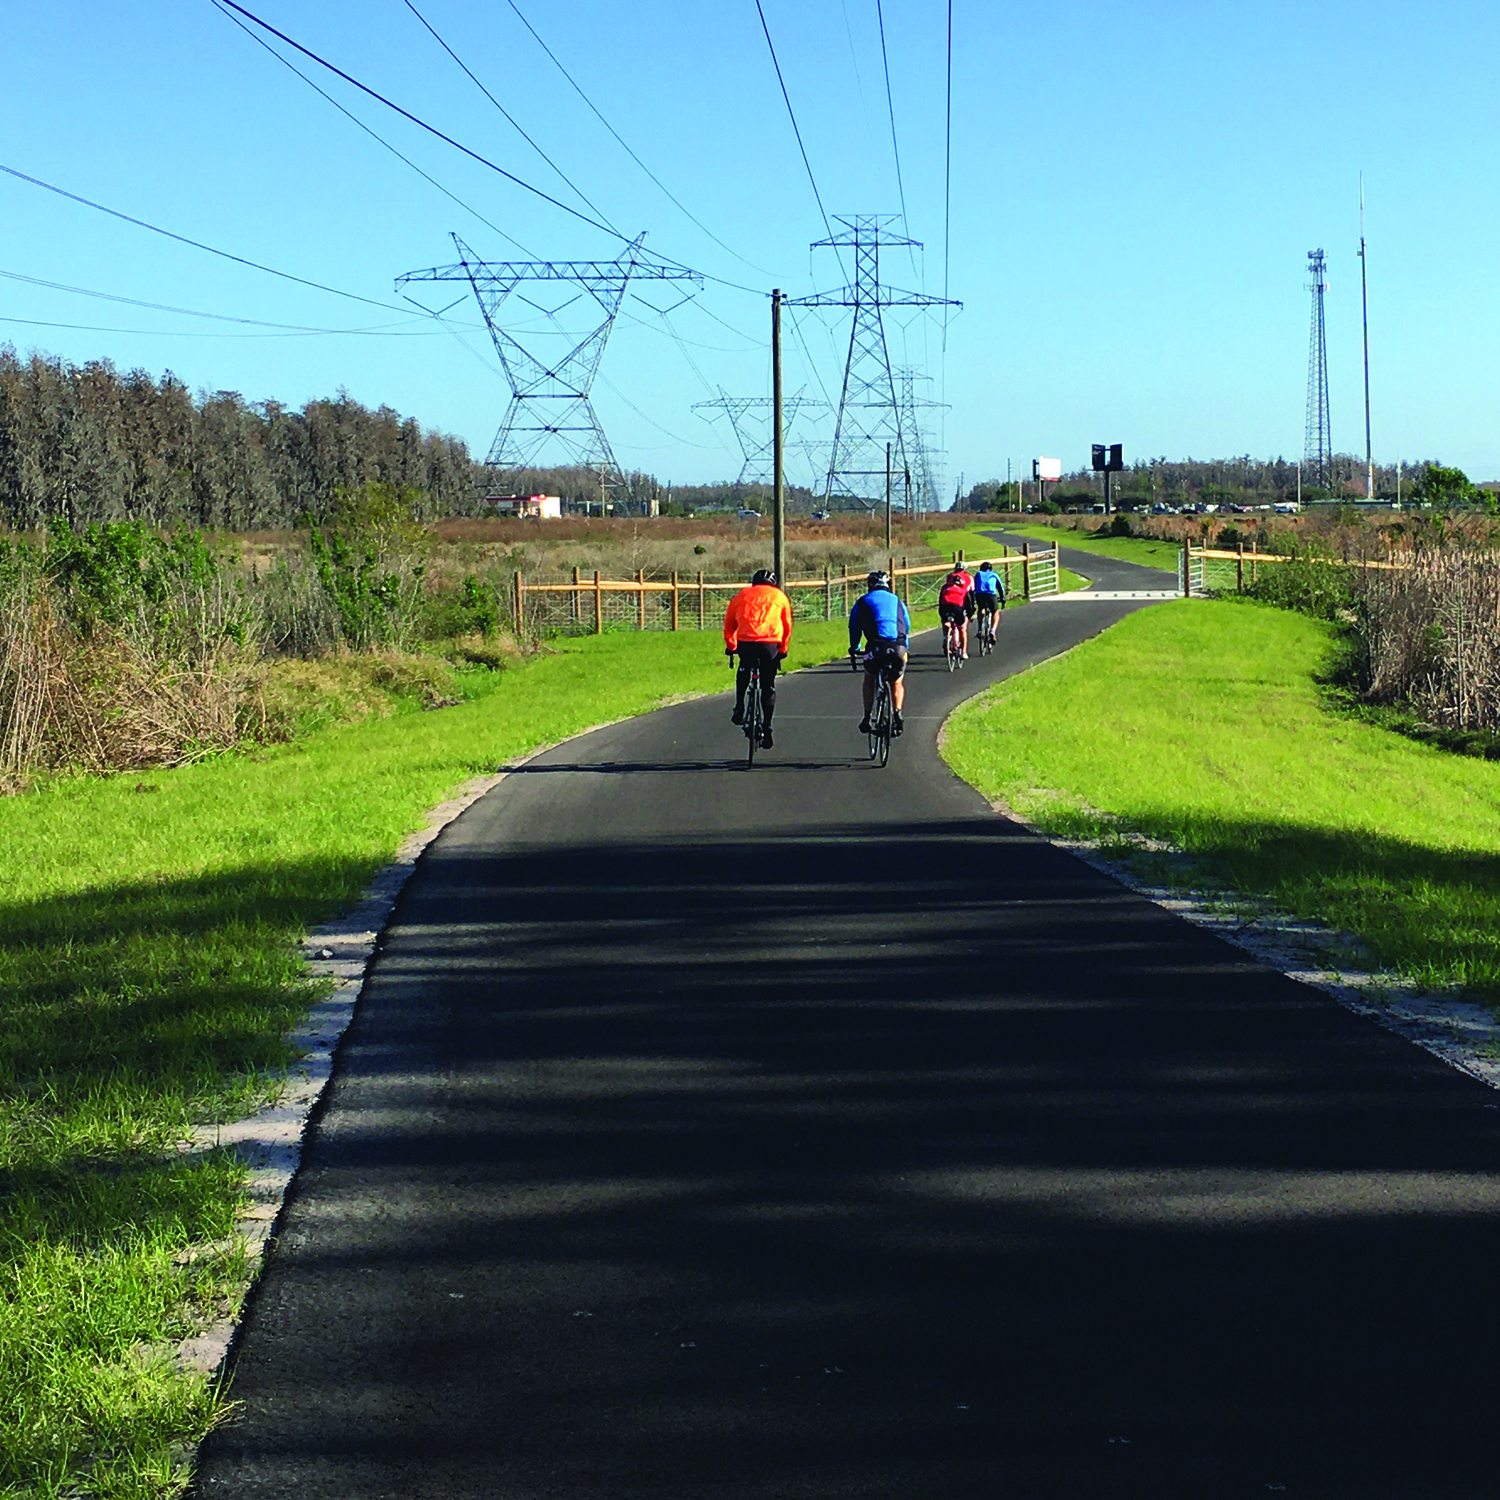 Cyclists on the Starkey Trail. Financial Management Number: 435719-1